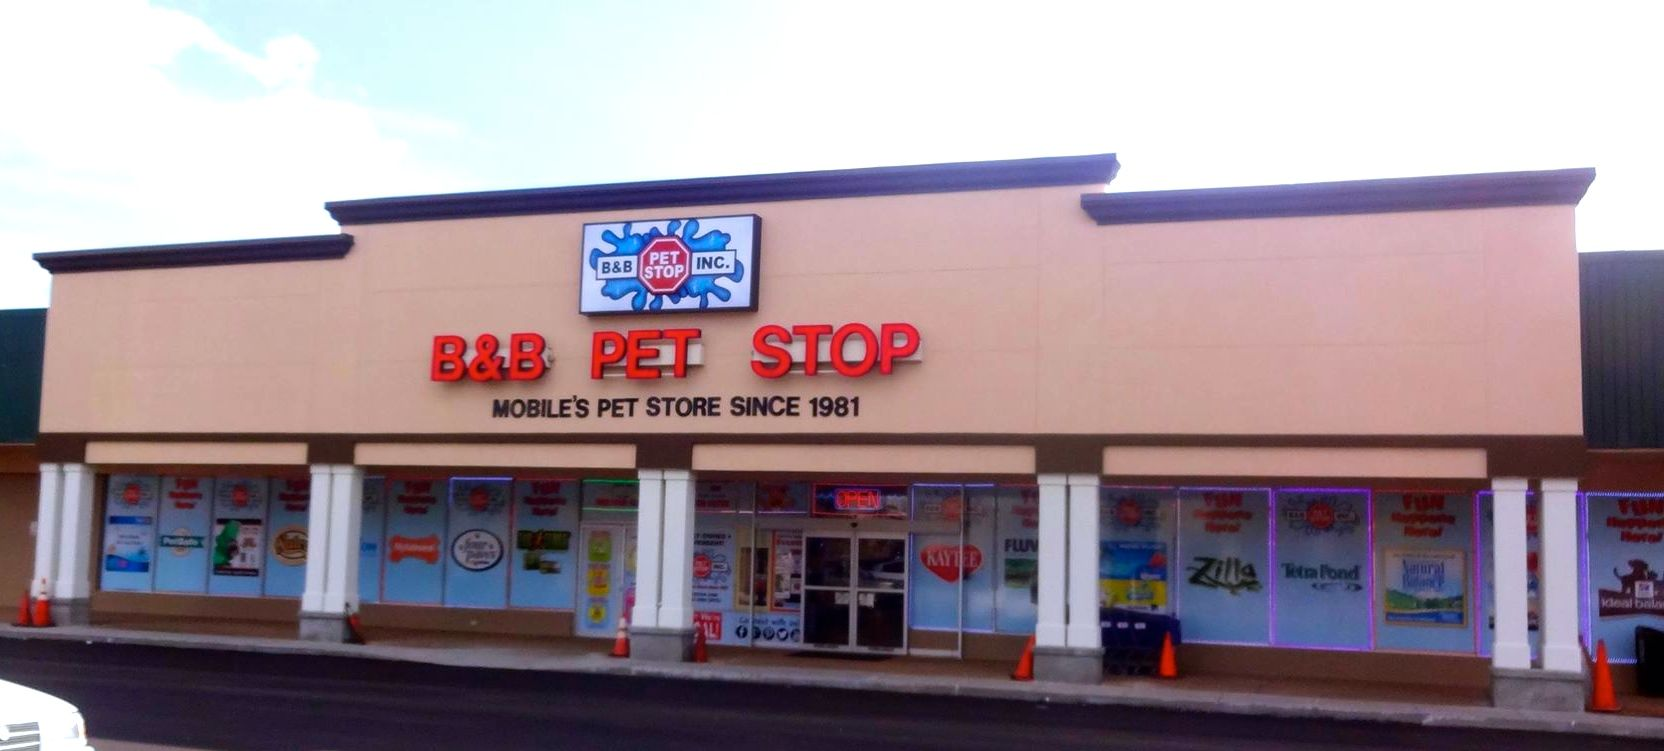 B&B Pet Stop Facade